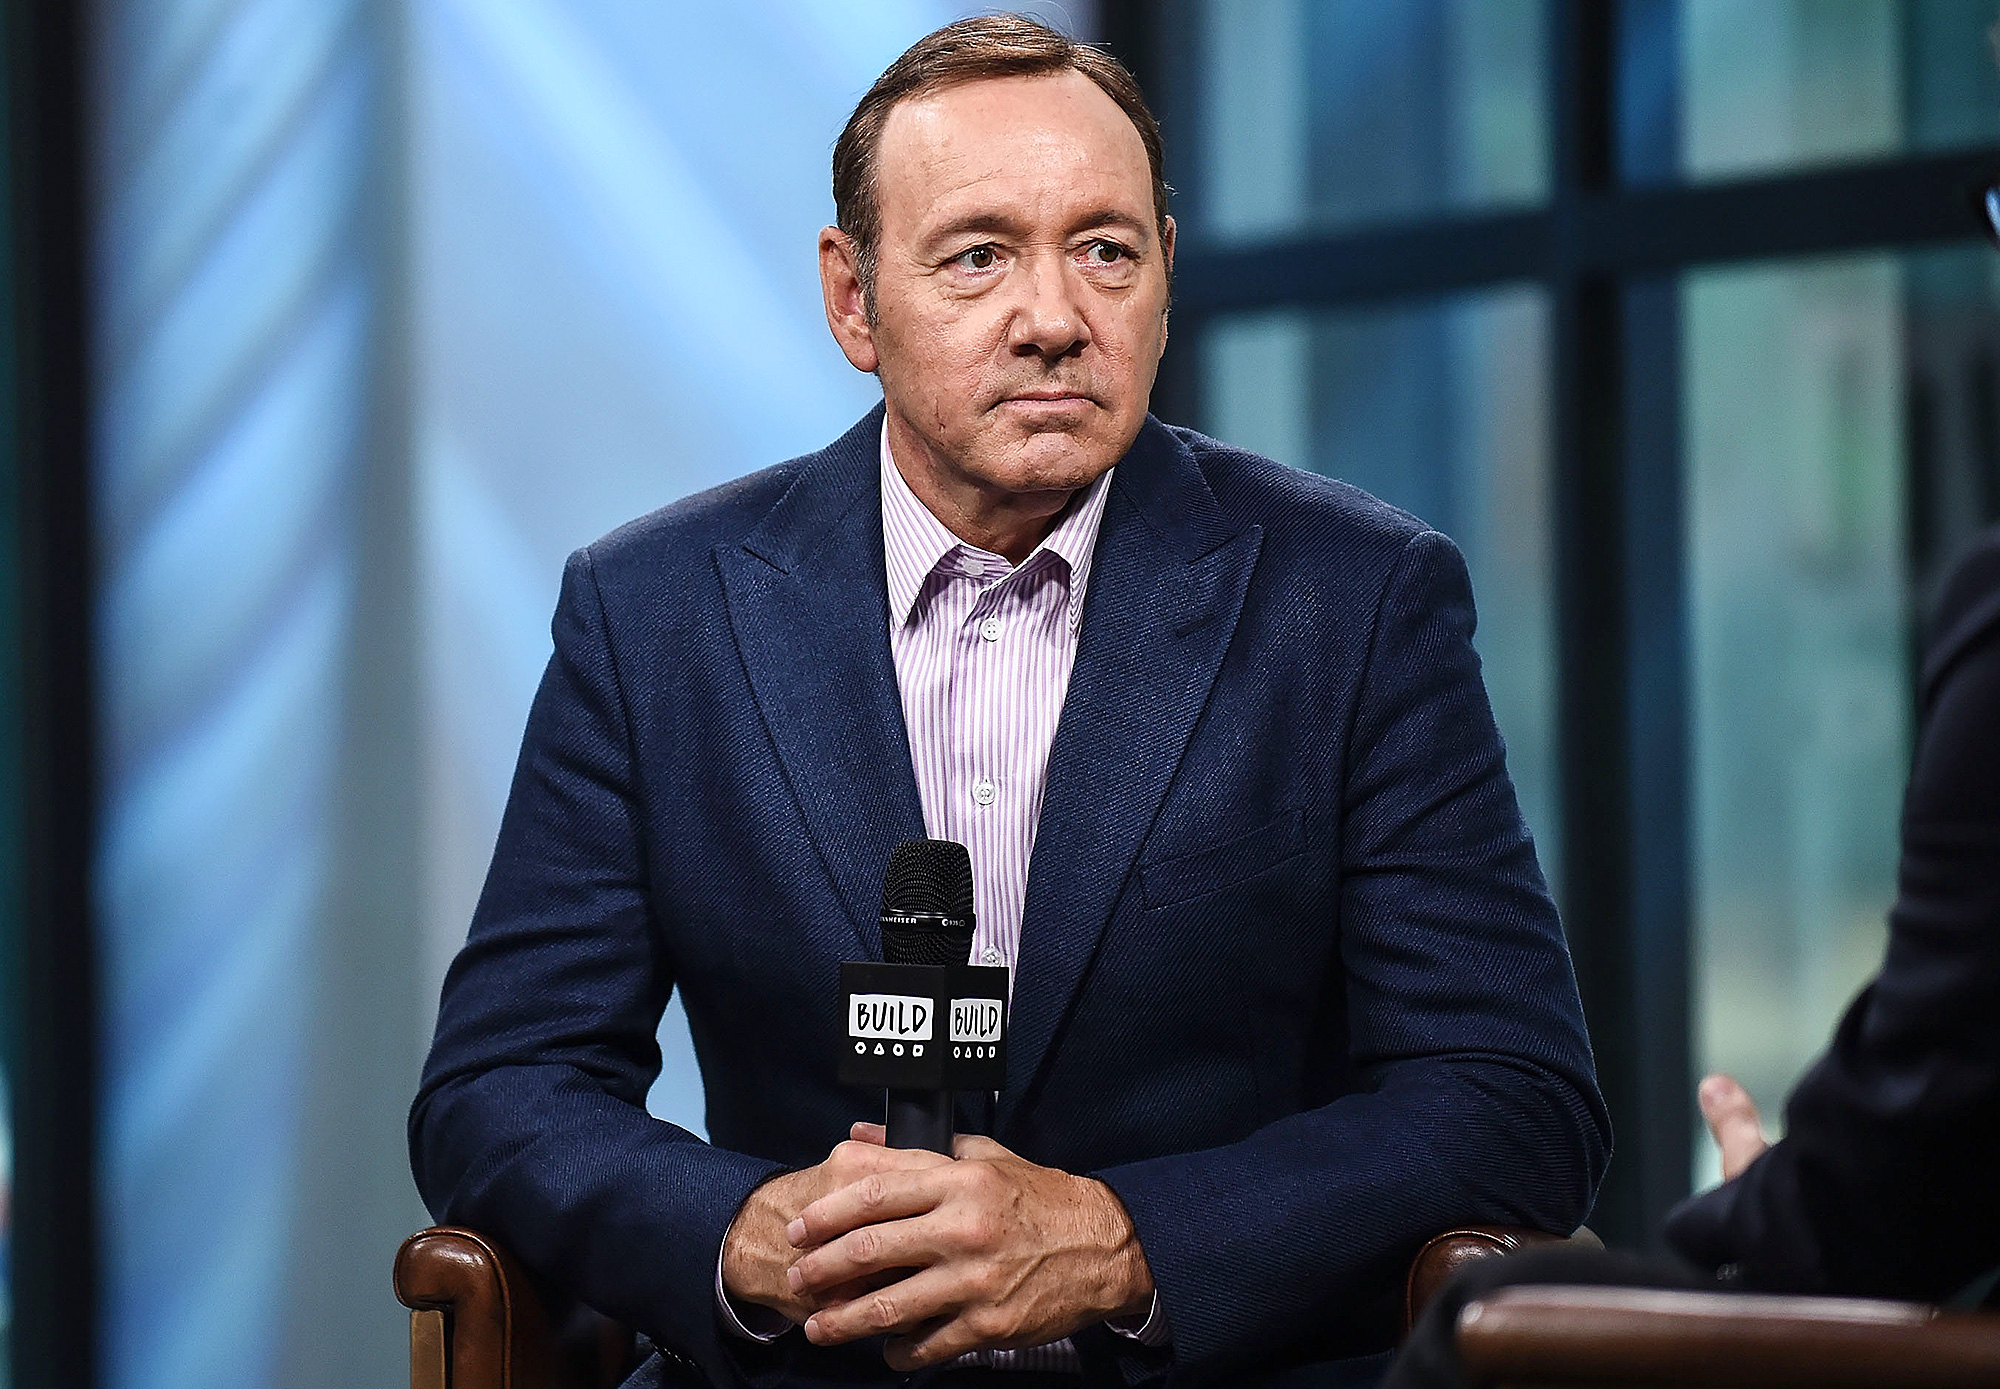 Kevin Spacey has become an Instagram user on February 23, 2016 63